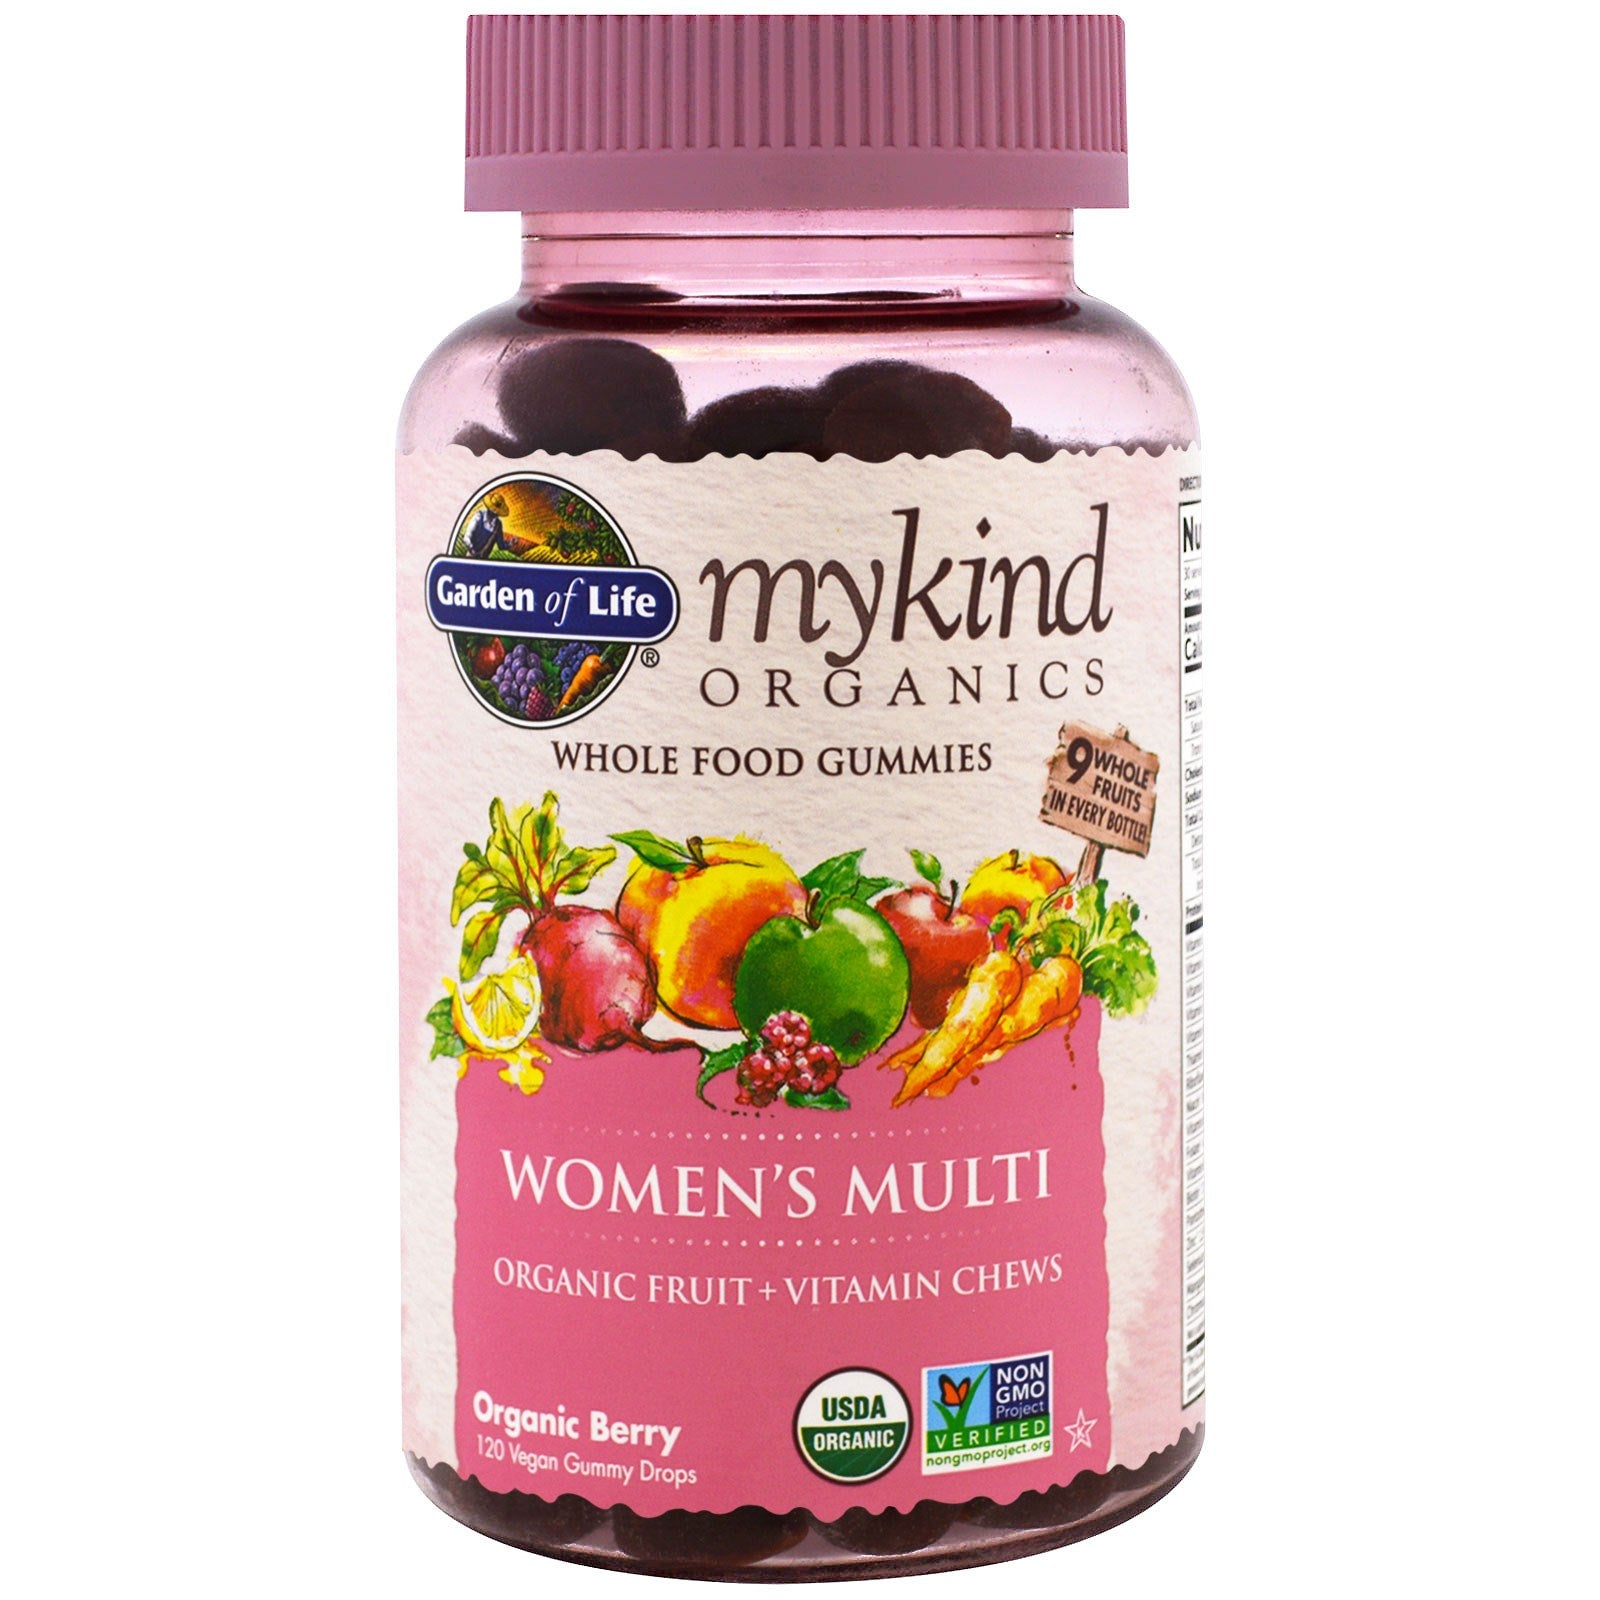 Garden of Life mykind Organics Women's Multi Gummy, 120 gummies.-NaturesWisdom